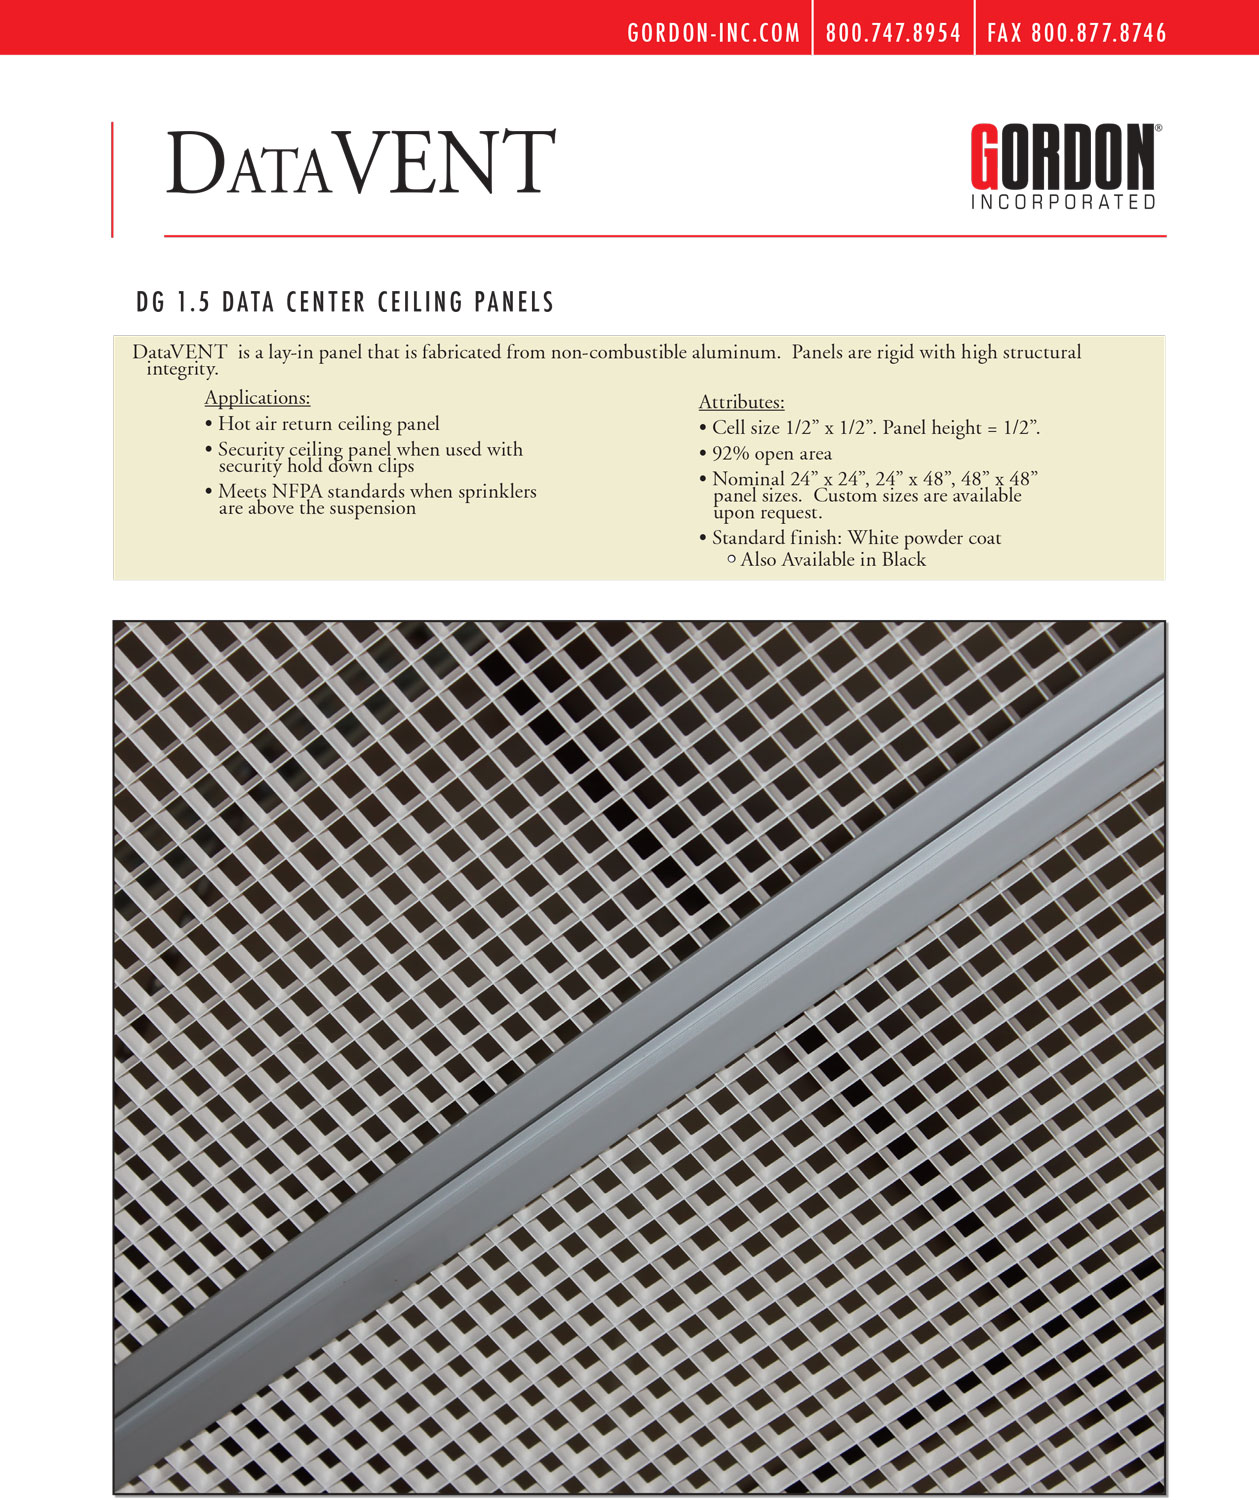 DataVENT Brochure, Gordon, Jas Filtration